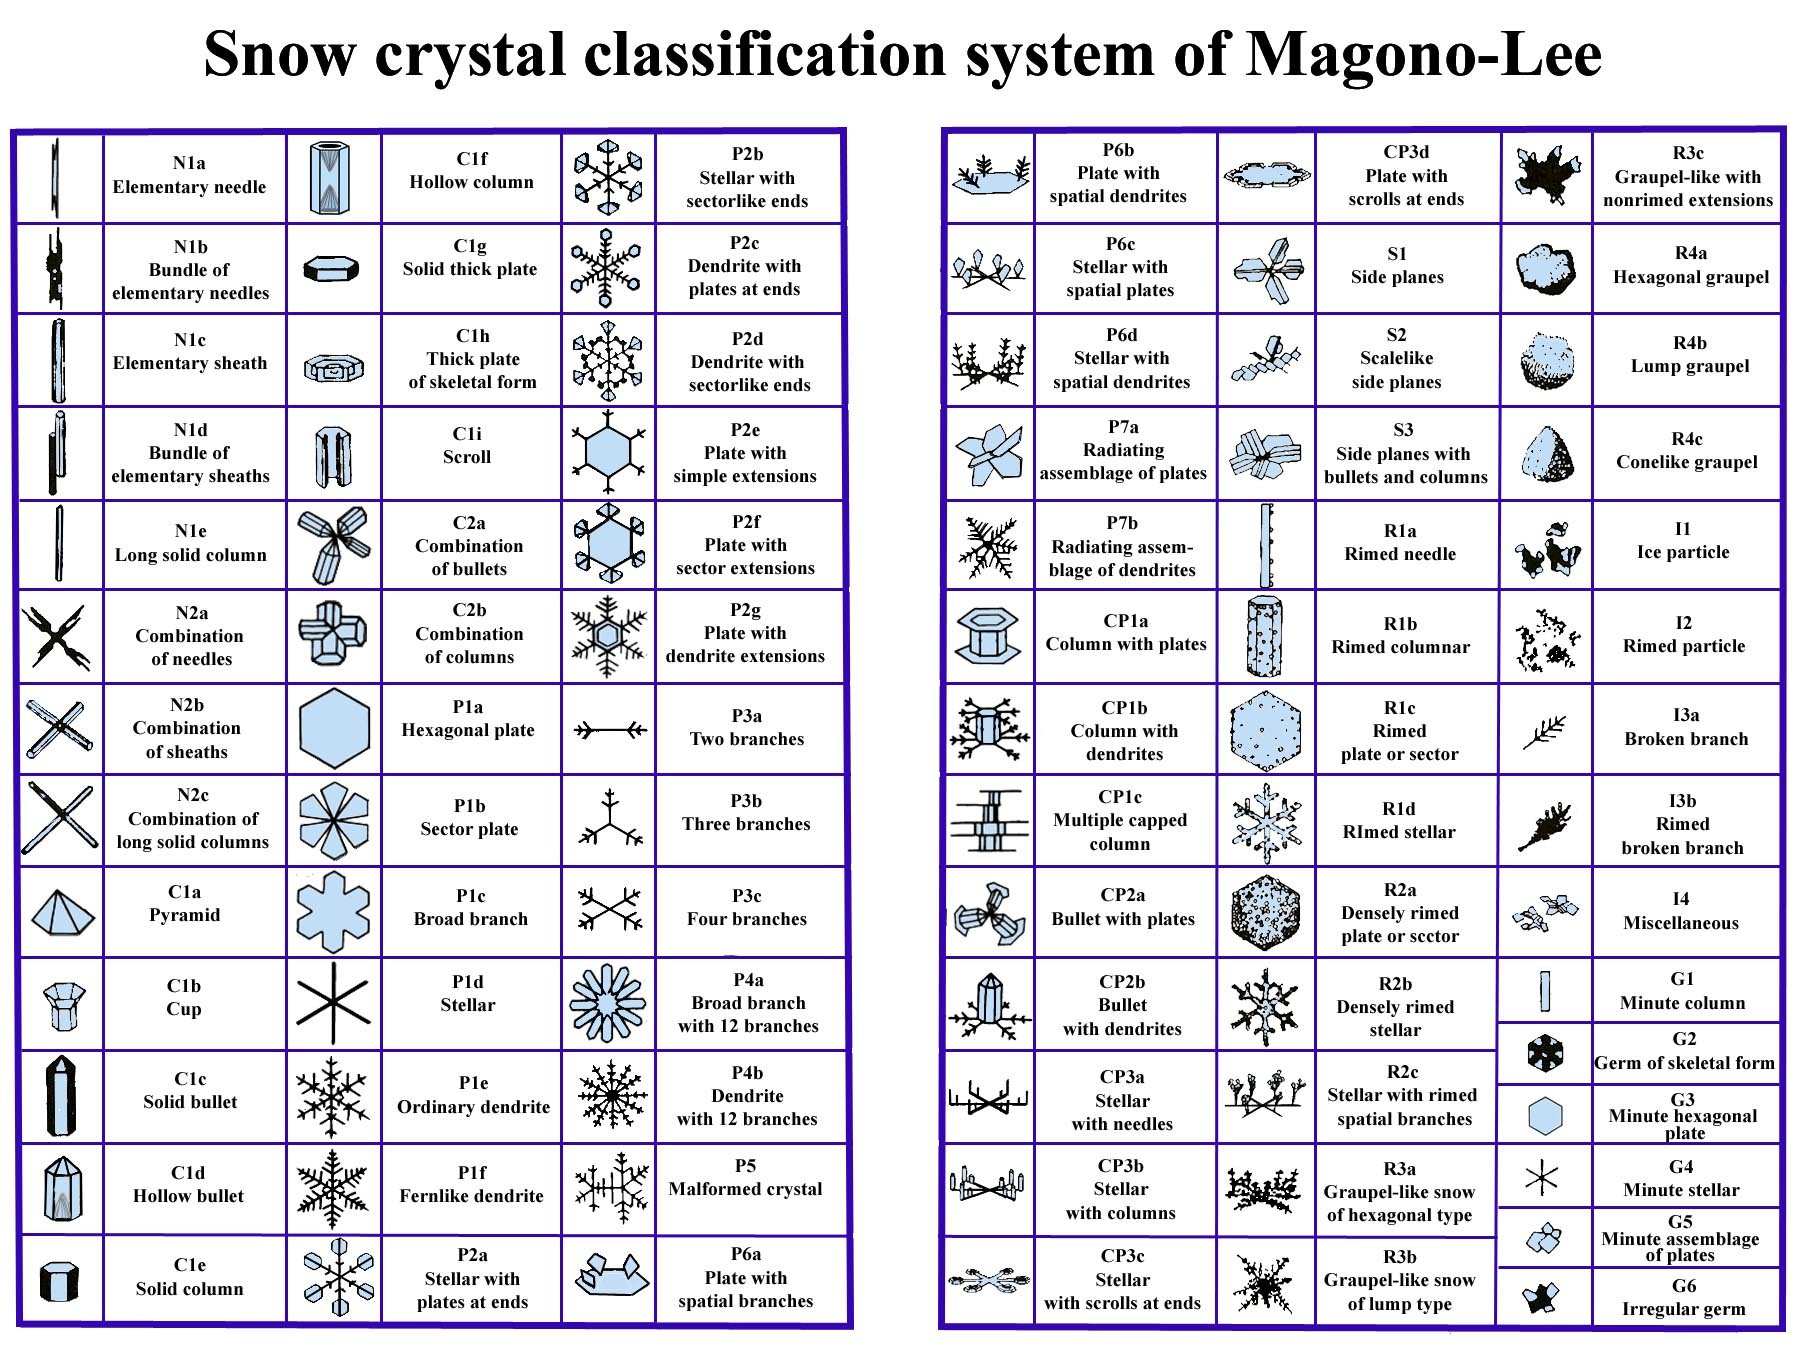 How to classify snow crystals